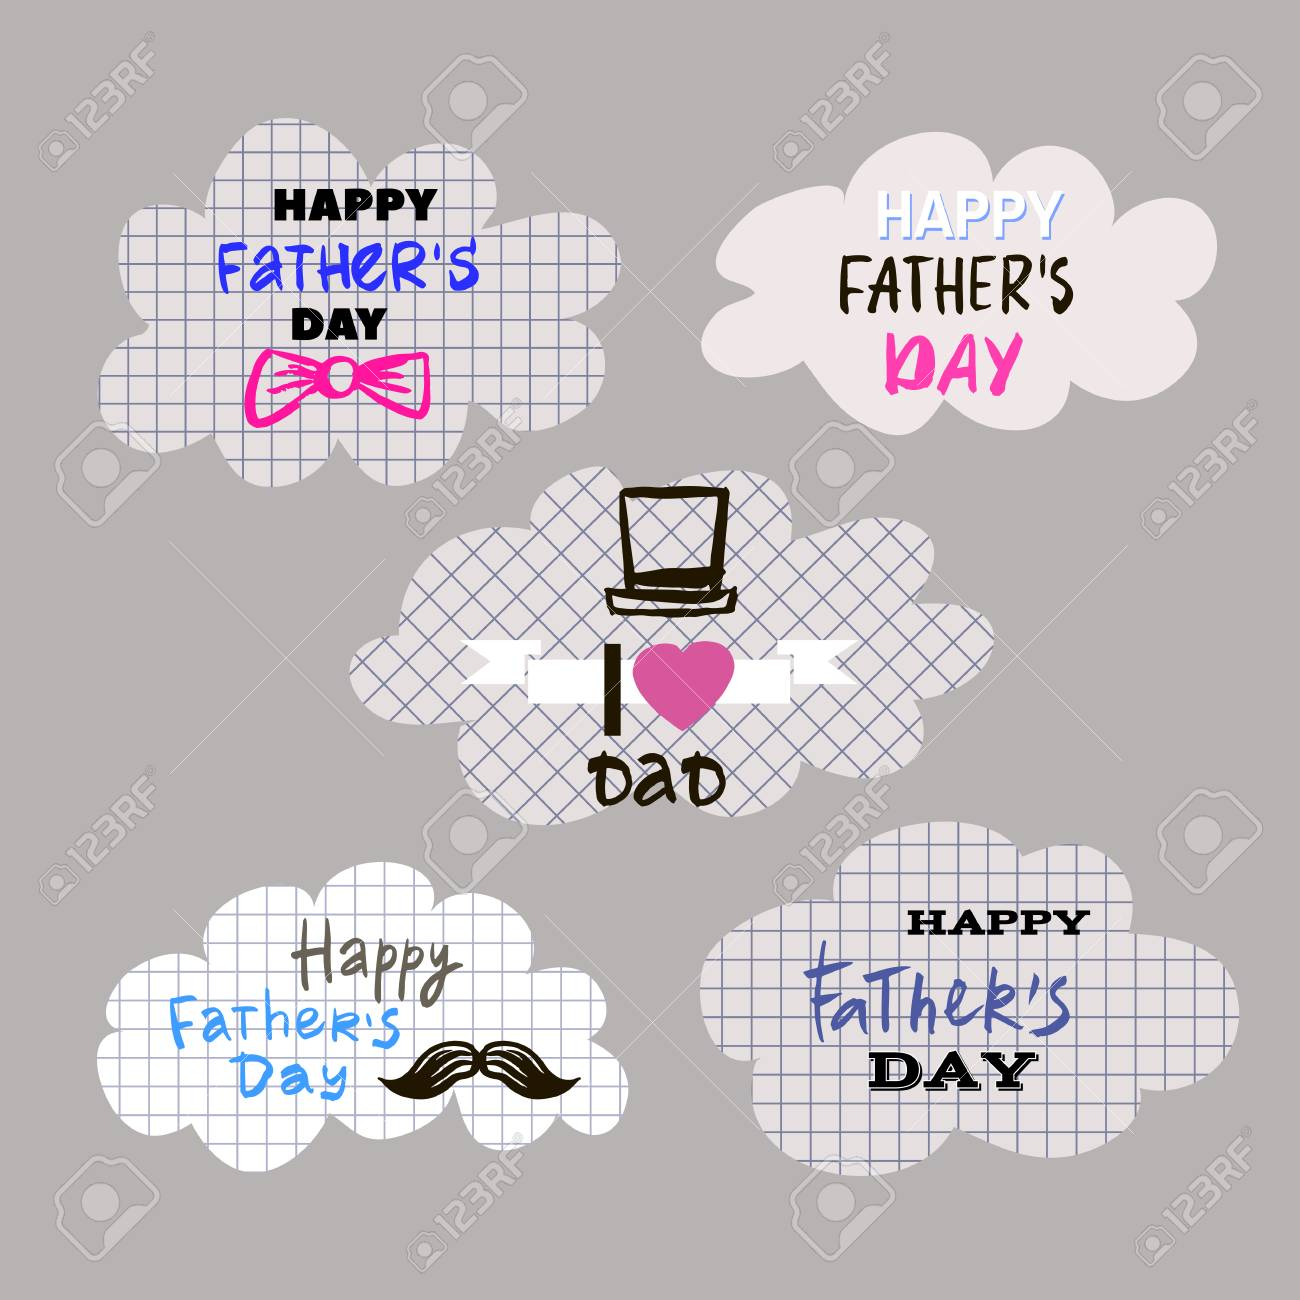 Happy Fathers Dayg Set Elements For Greeting Cards Banners